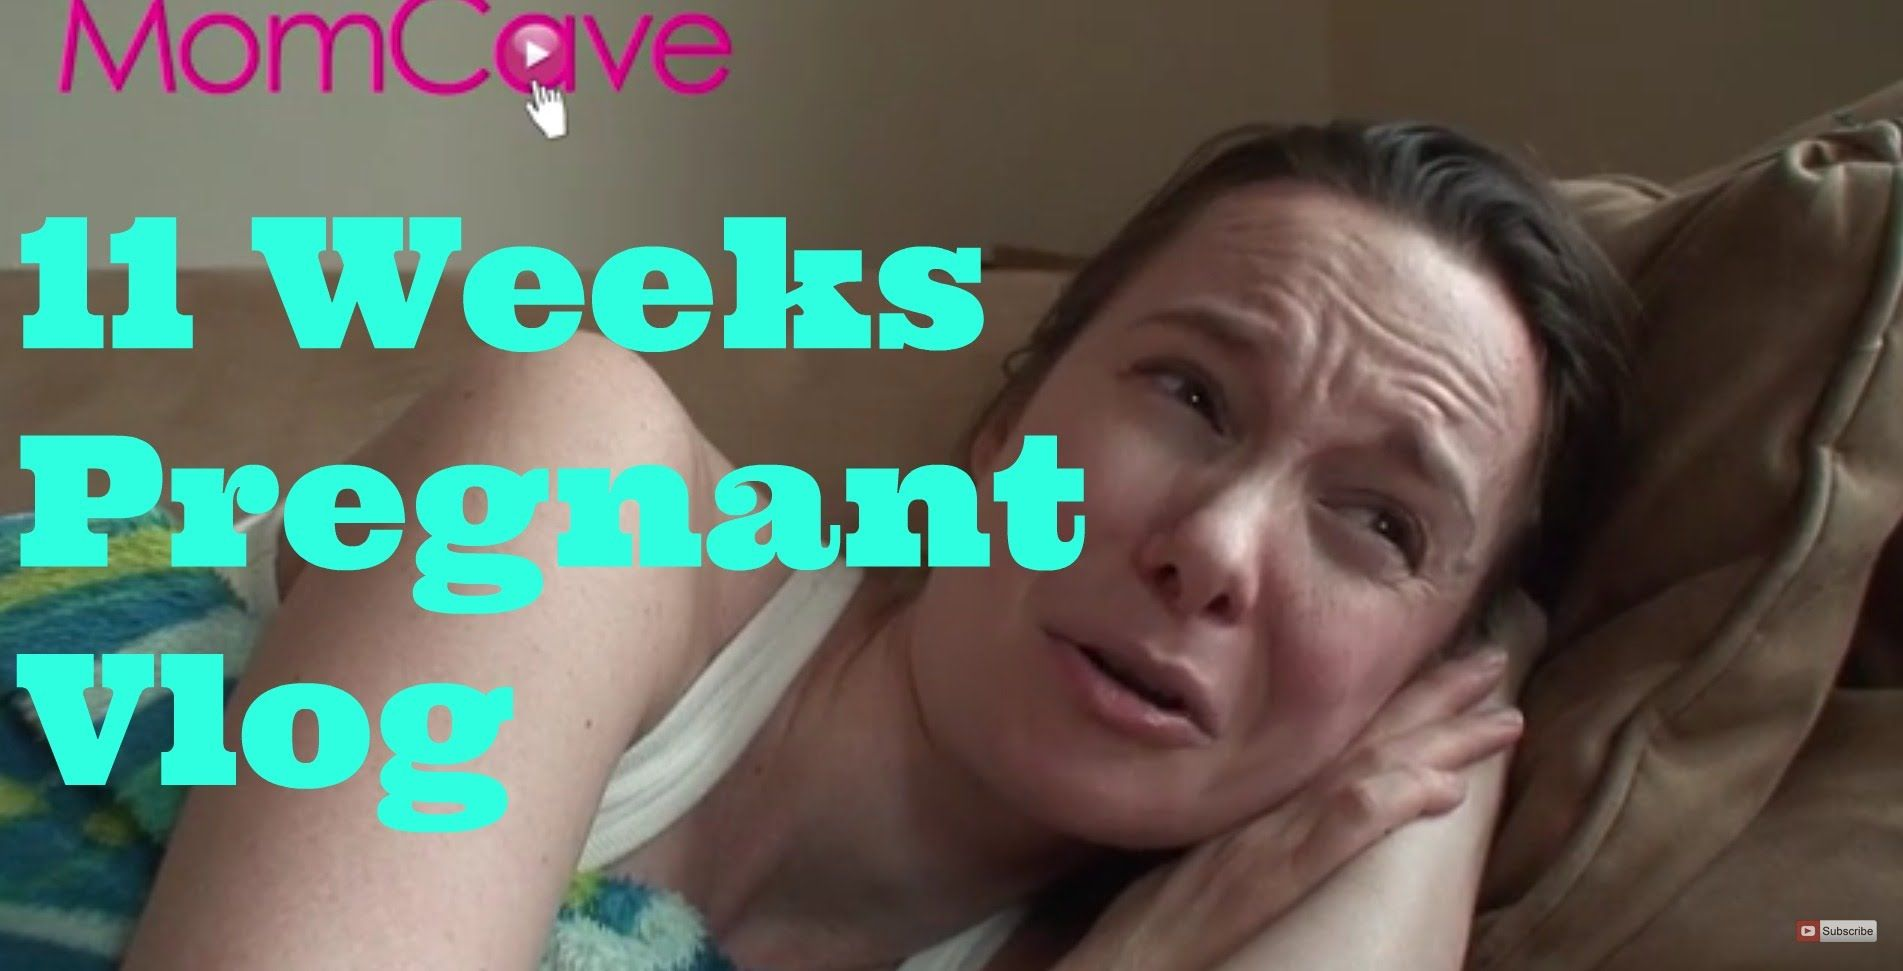 11 Weeks Pregnant Vlog, Pregnancy Vlog, Morning Sickness, Pregnancy Symptoms,  Announcing Pregnancy